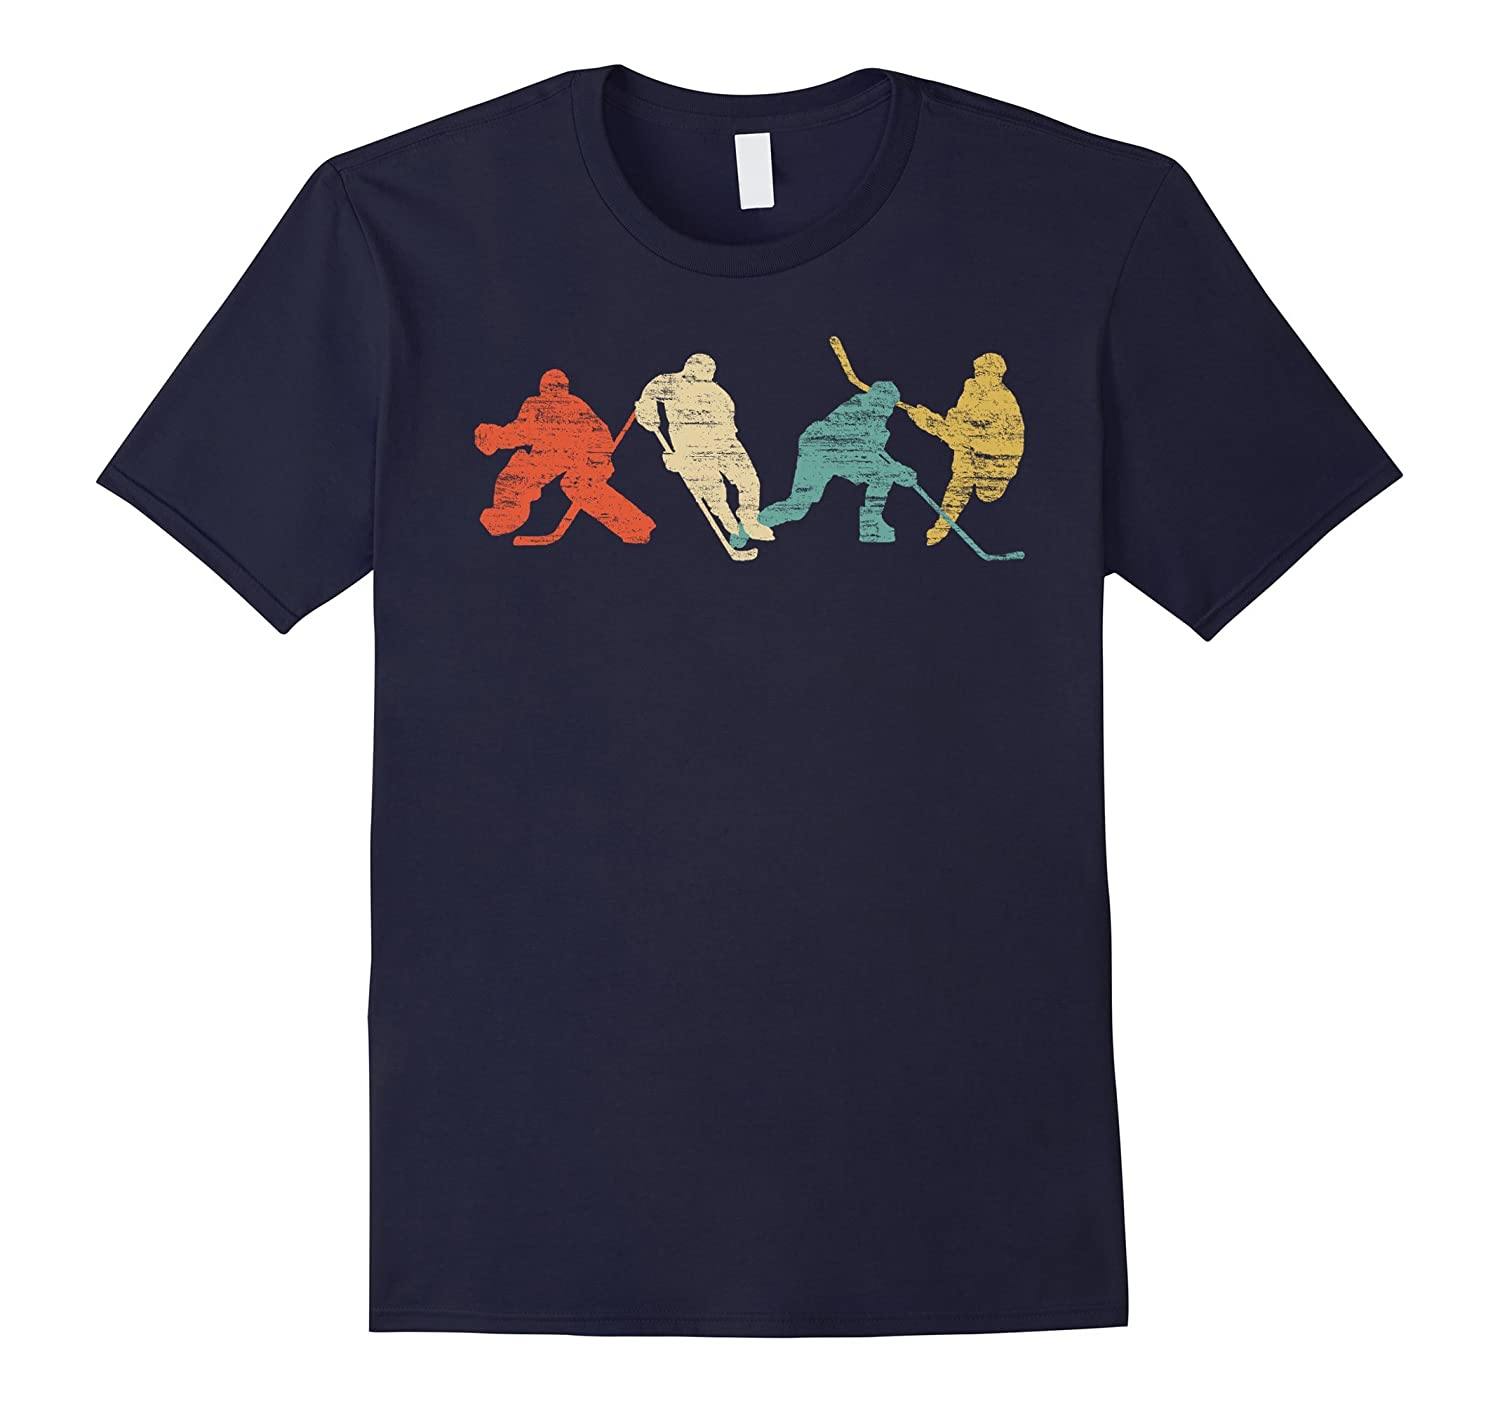 Classic Vintage Style Ice Hockey T-Shirt-ah my shirt one gift